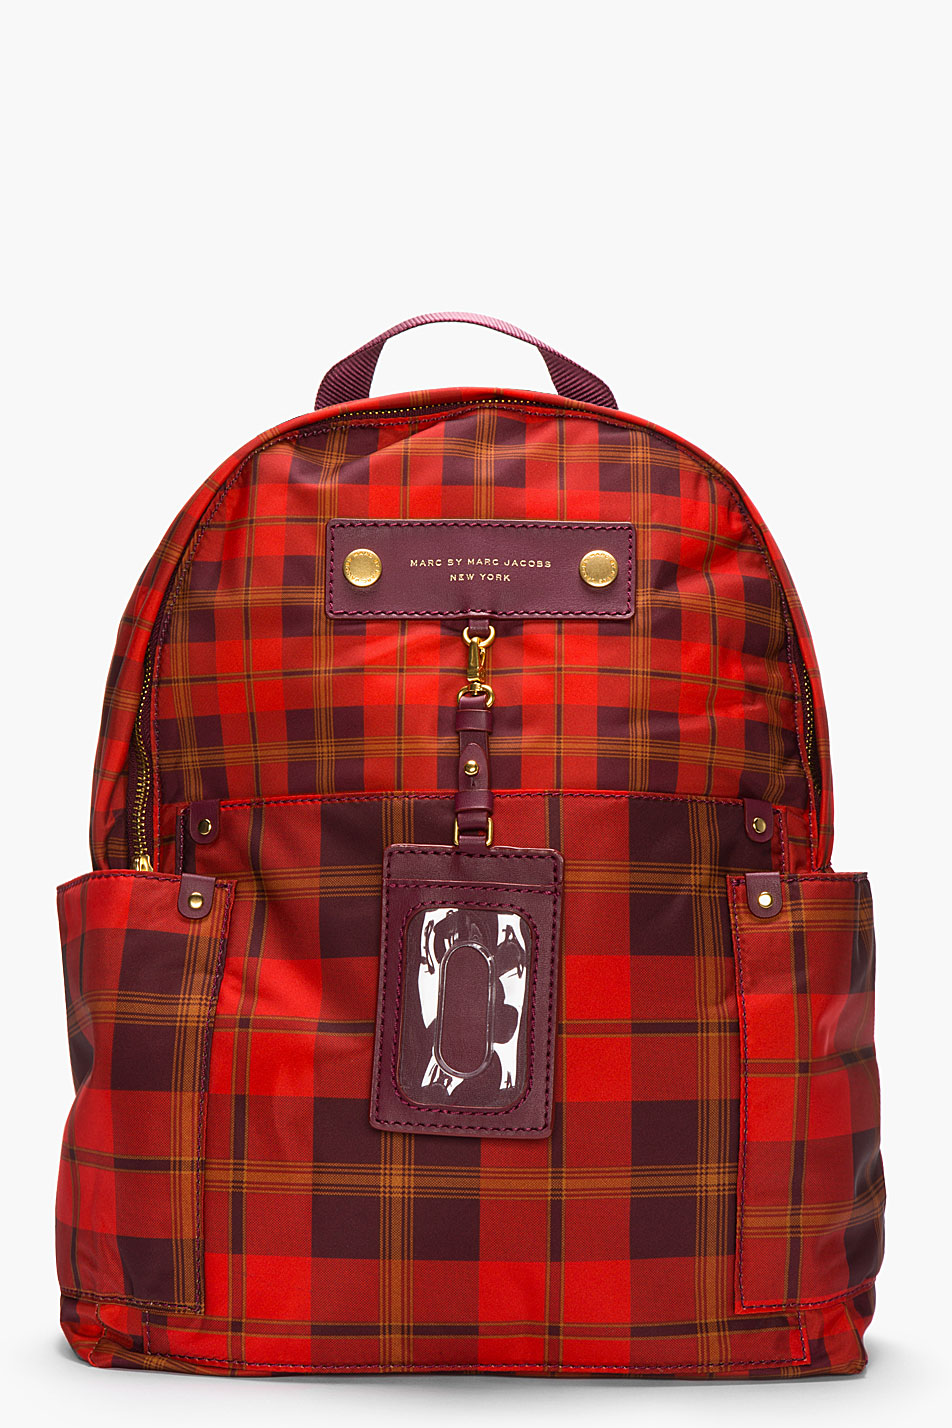 Marc by Marc Jacobs plaid backpack